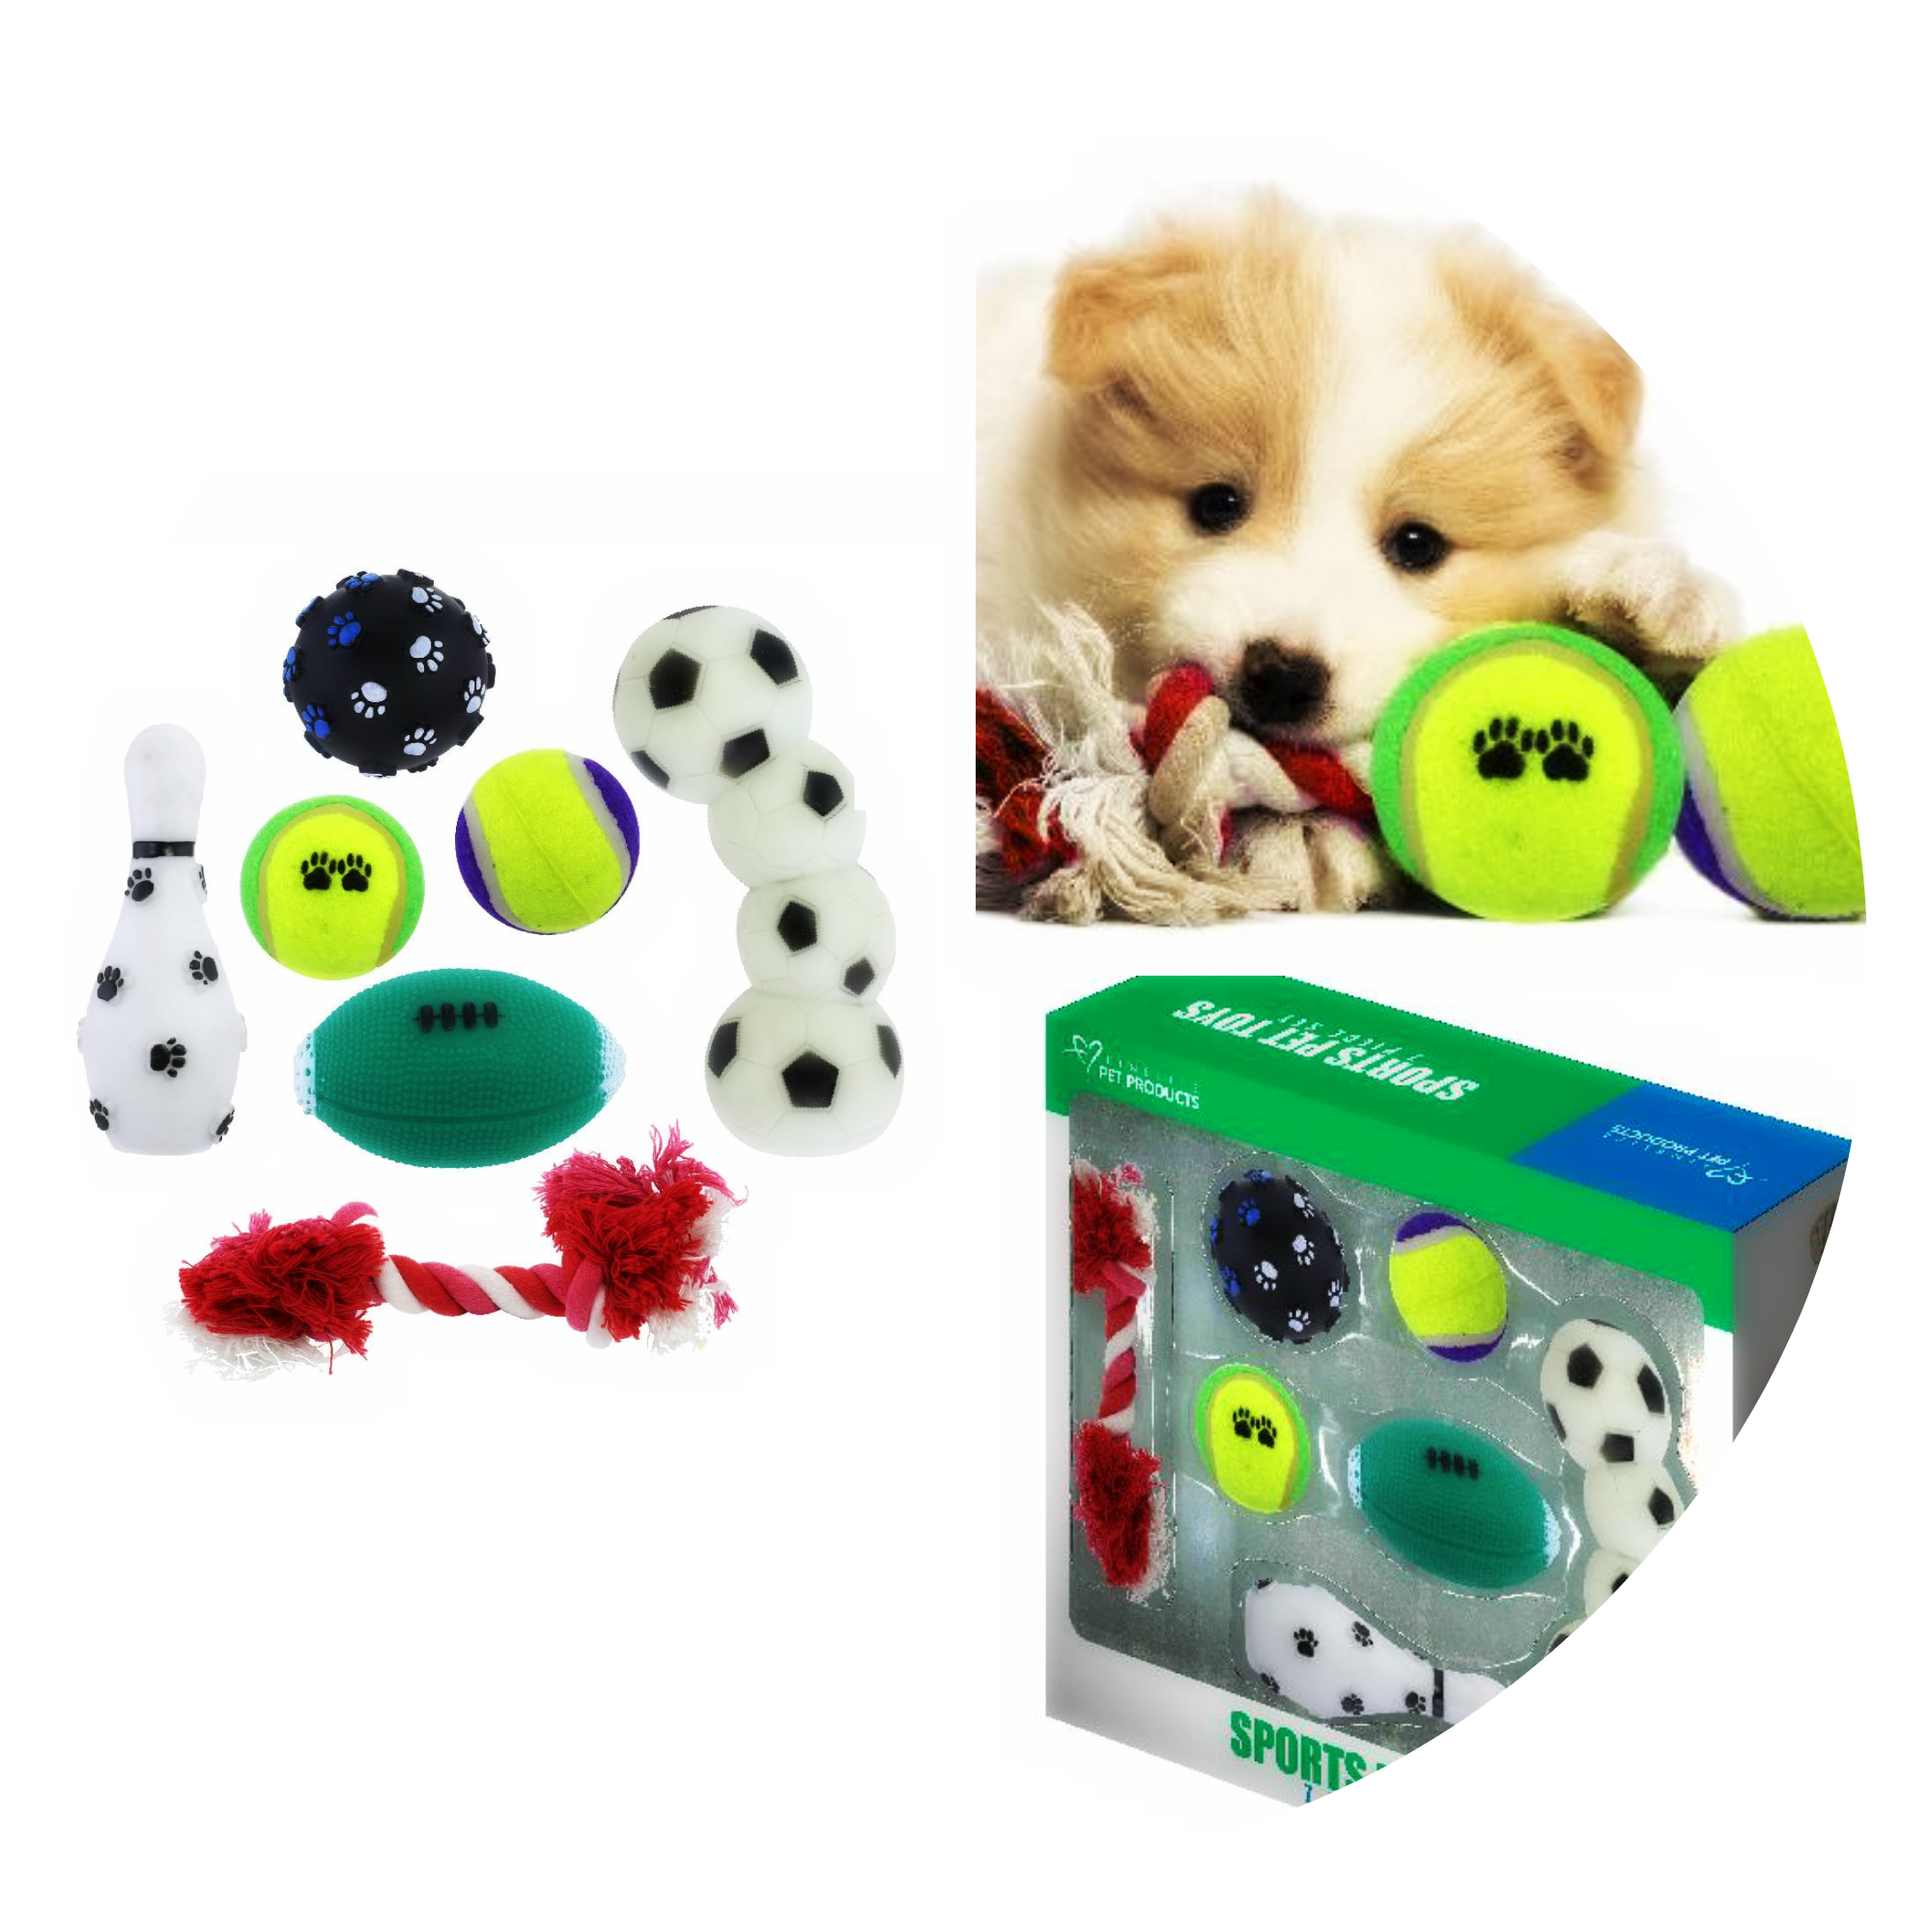 New at KHD – Sports Pet Dog Toy Gift Set